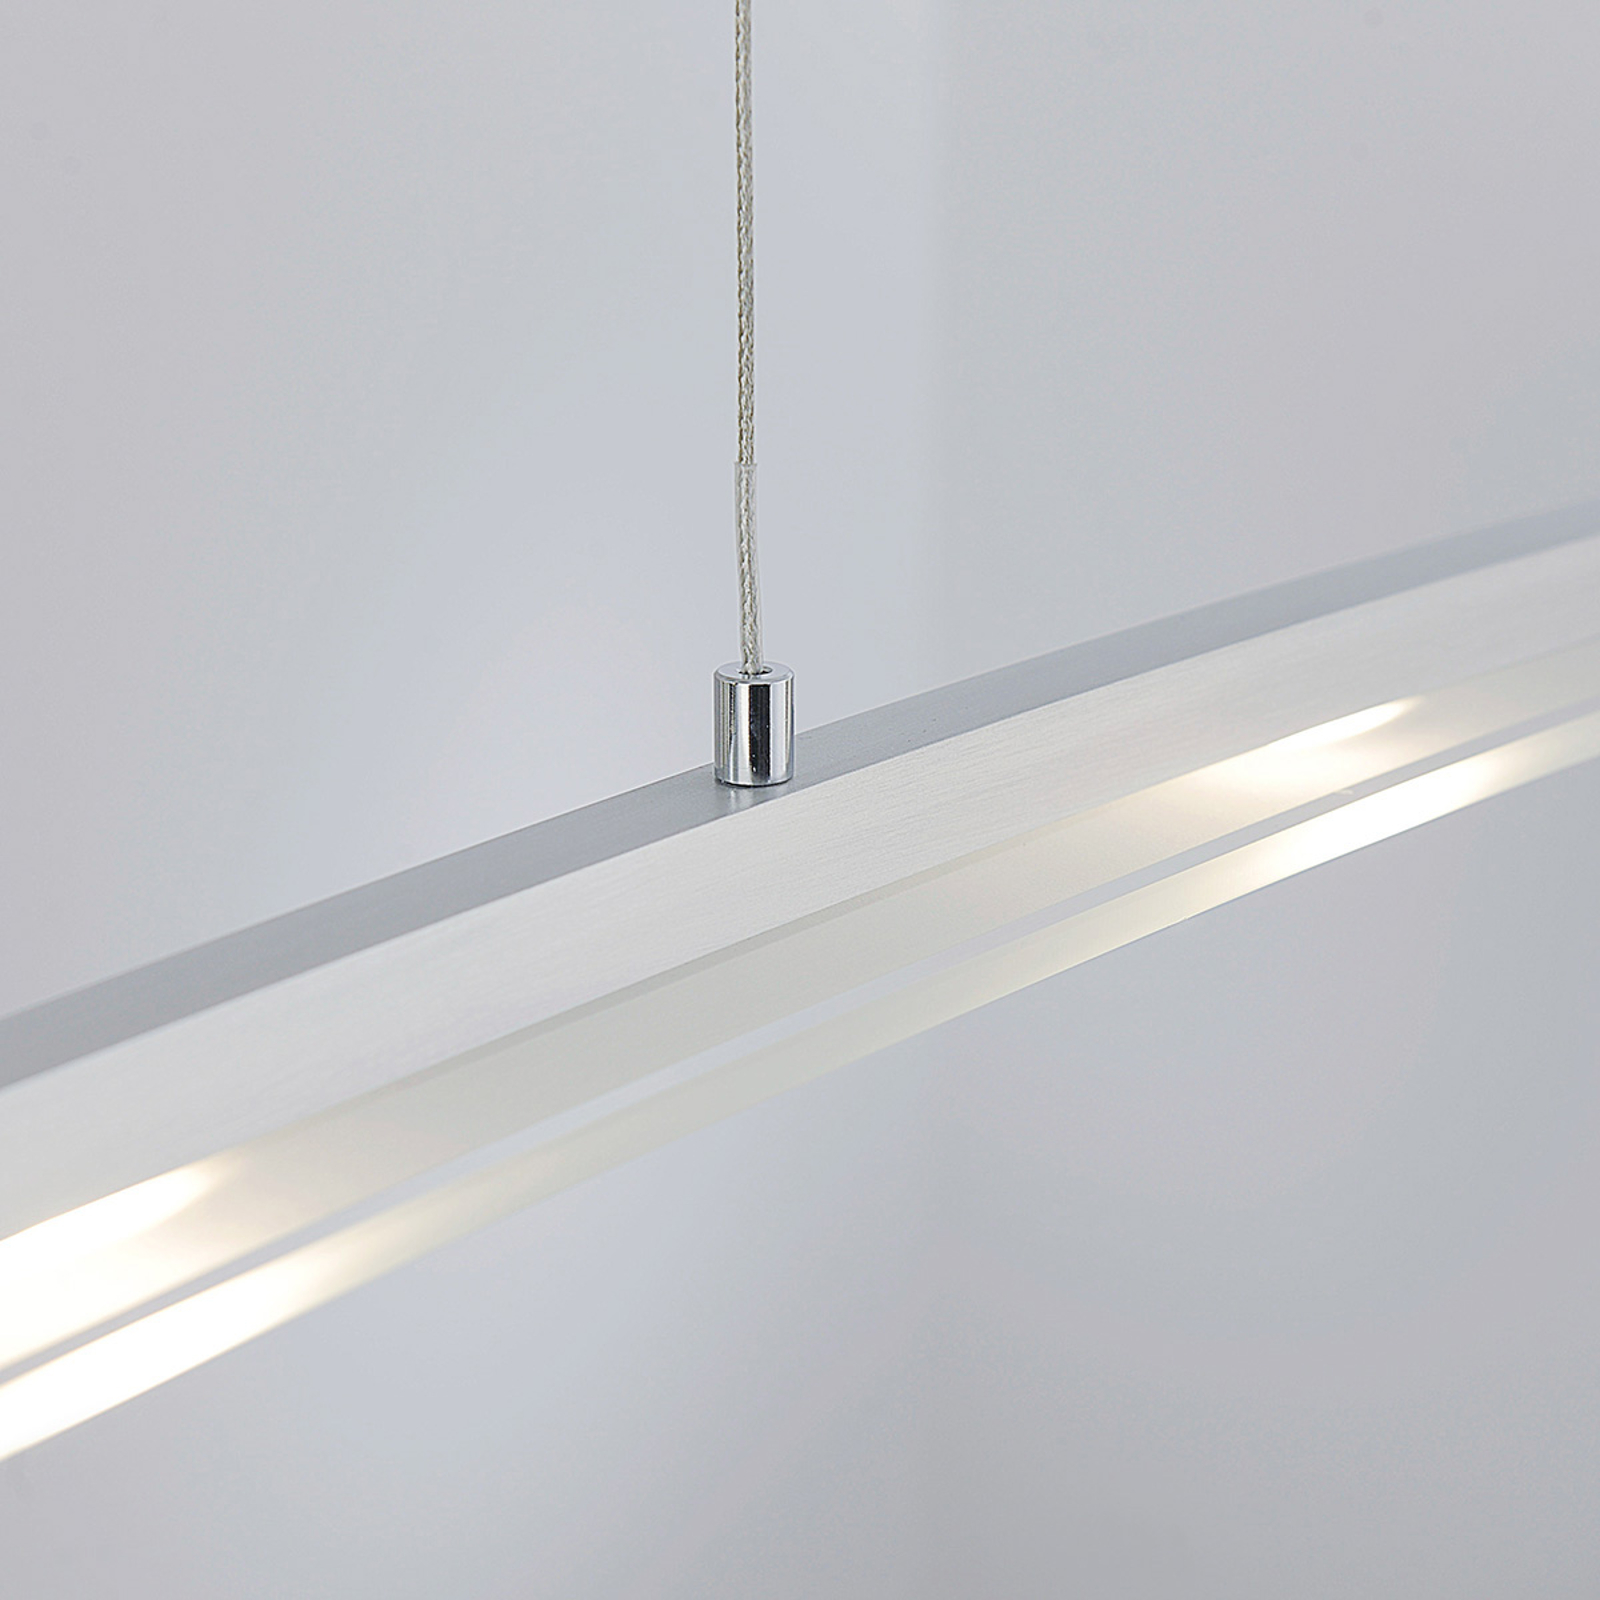 Juna - suspension LED, abat-jour verre, 98 cm long